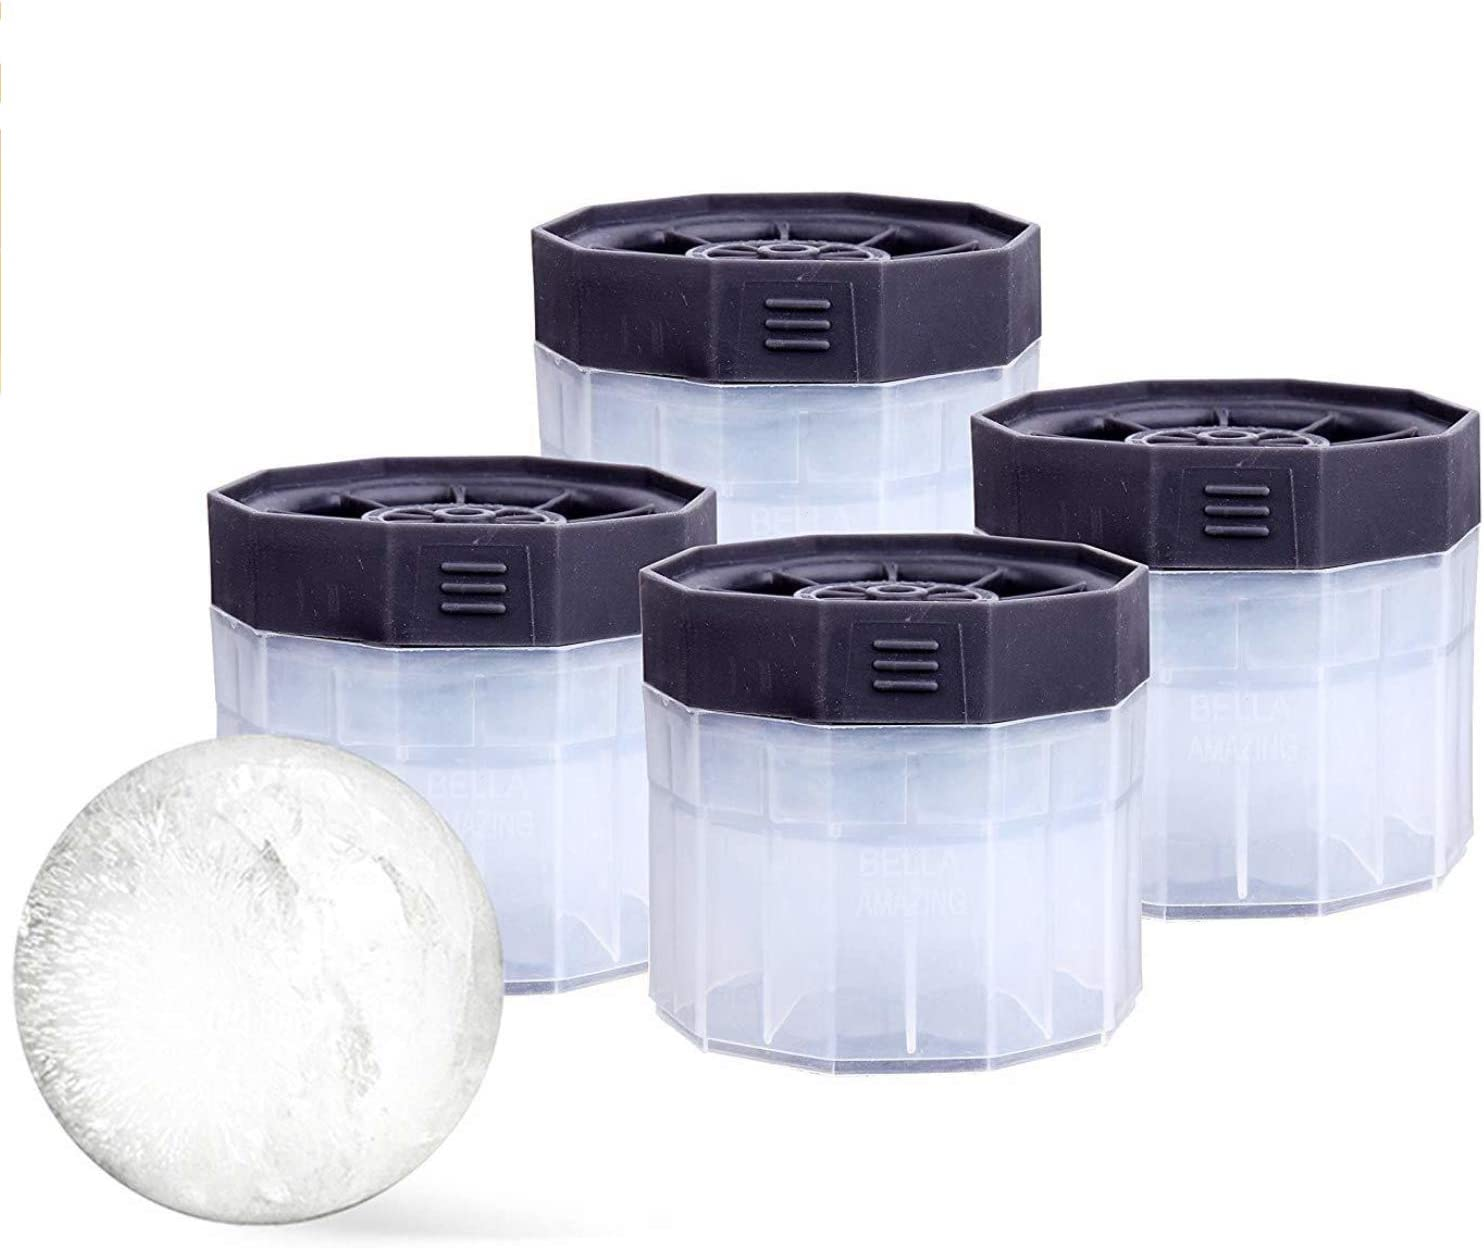 Bella Amazing- Ice Ball Molds, 2.5 Inch Round Ice Cube Molds. This Stackable Slow Melting Ice Sphere Molds are perfect for Whiskey, Scotch, Bourbon, Spirits, or any Drink (4, Black) (4, Clear)